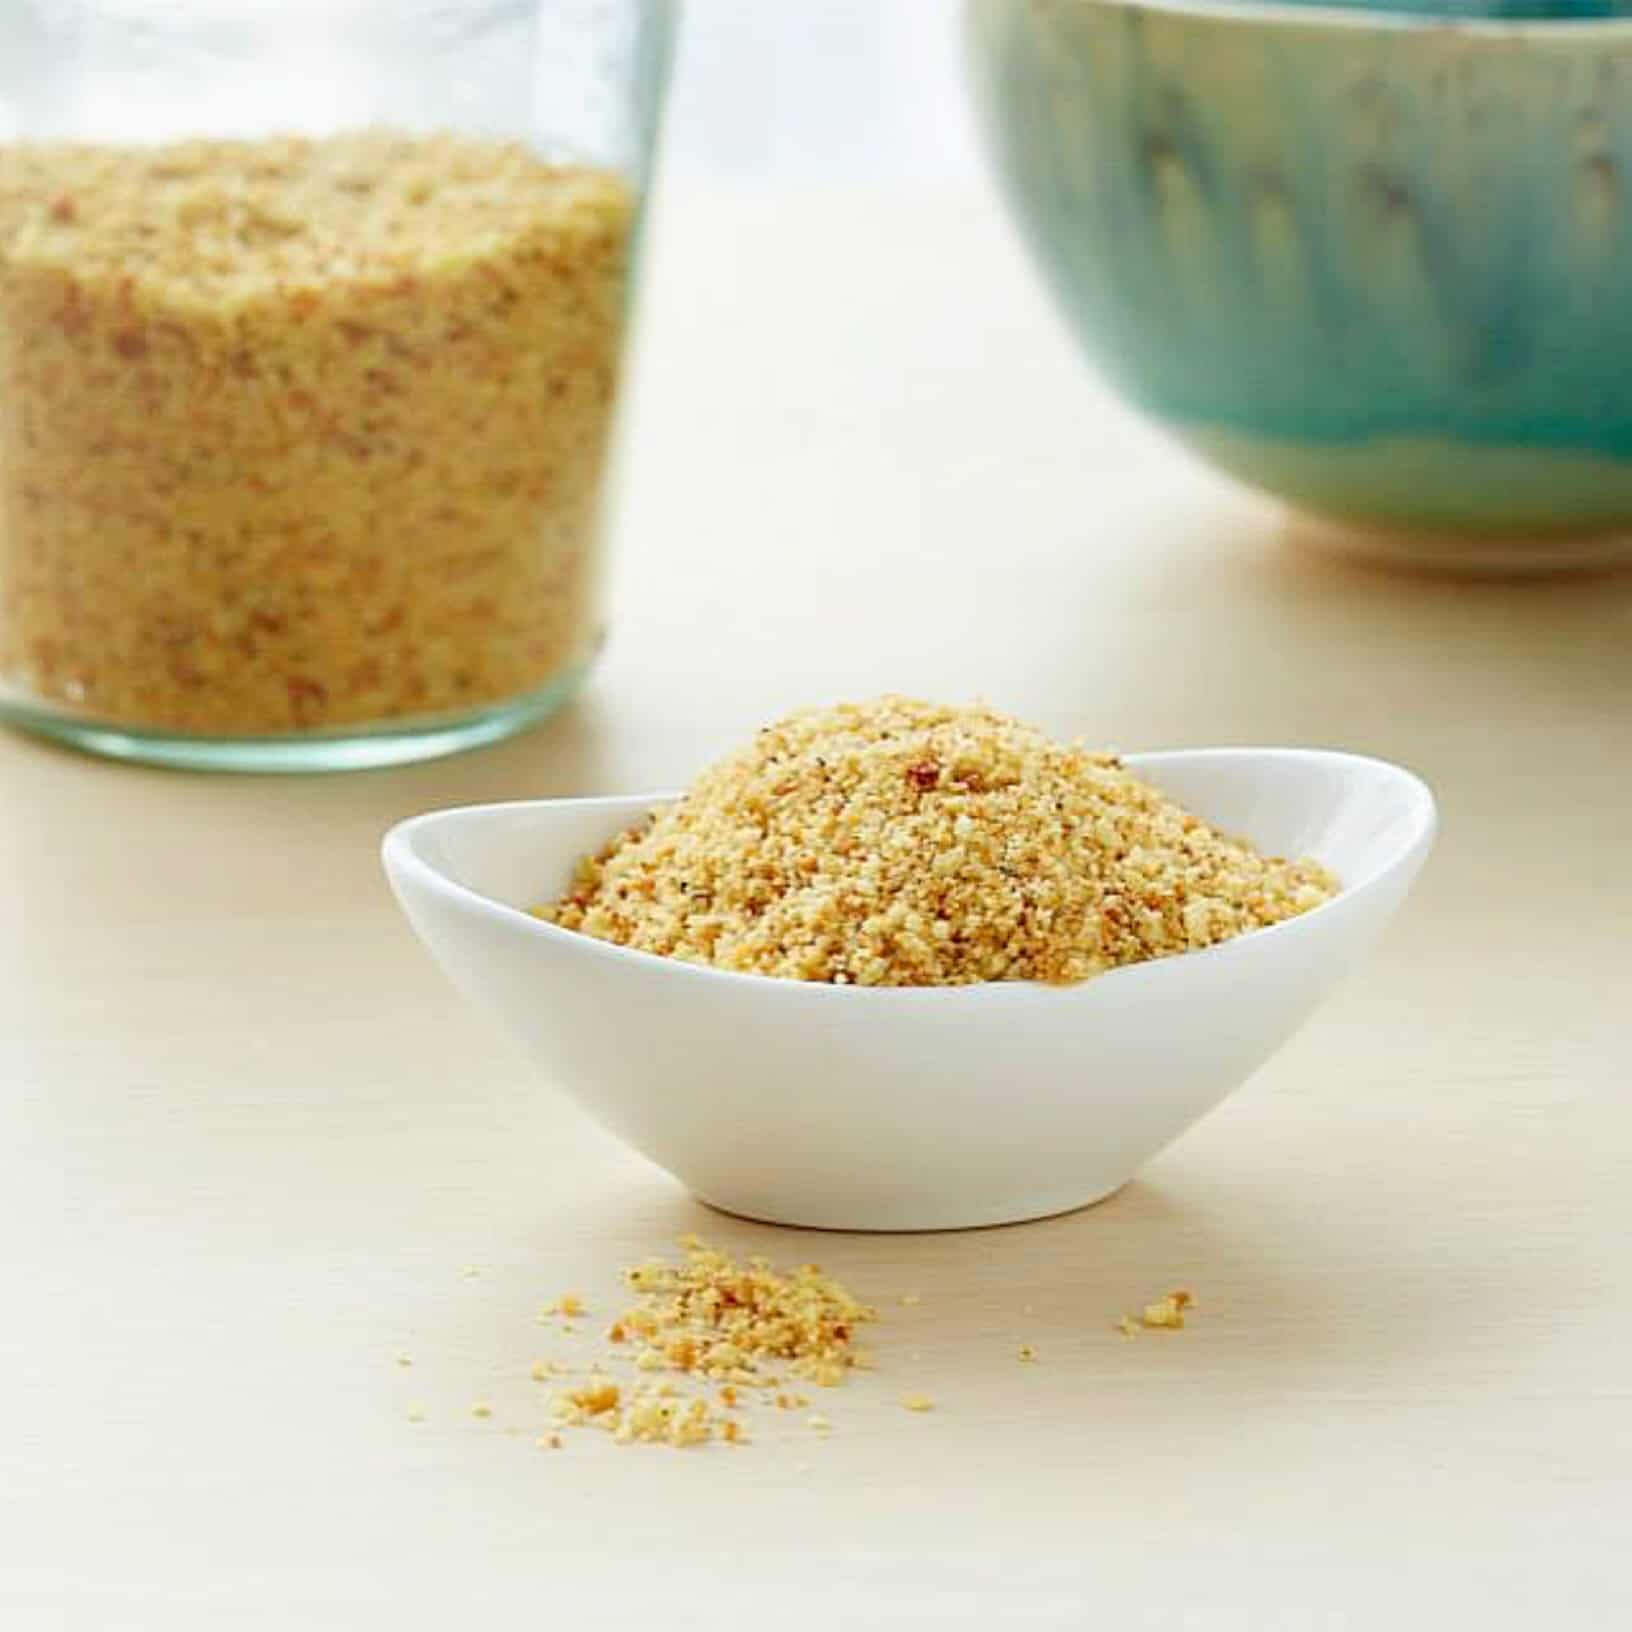 Grain-Free Bread Crumbs